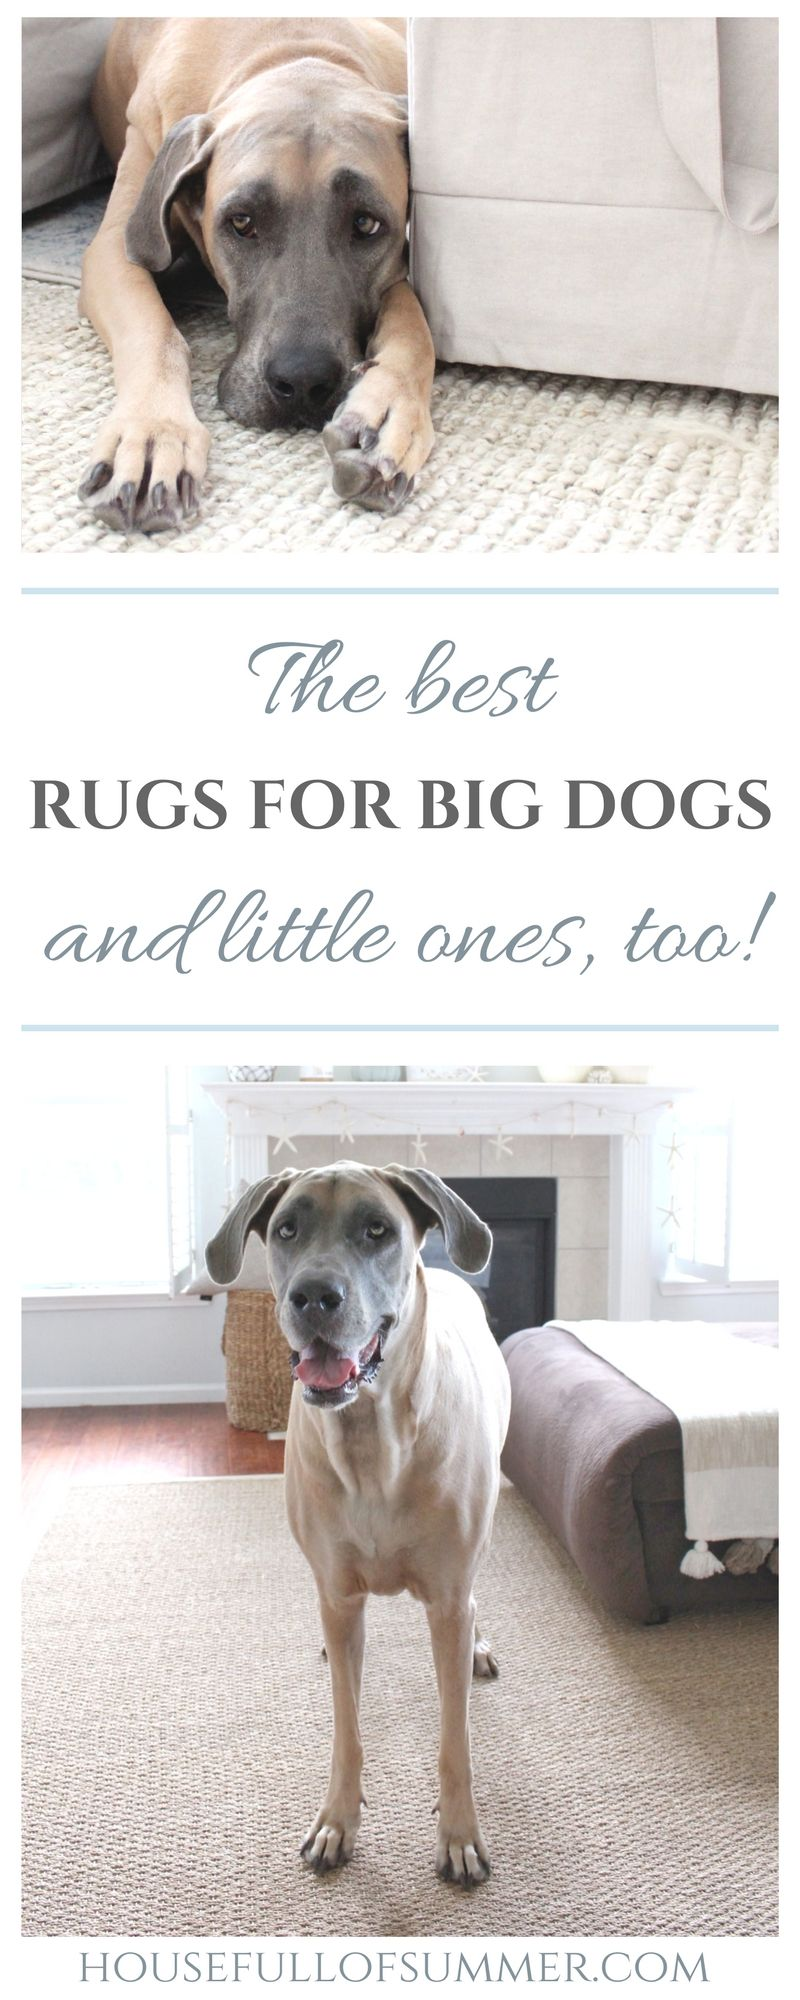 The Best Rugs for Big Dogs (and little ones, too!) Cool